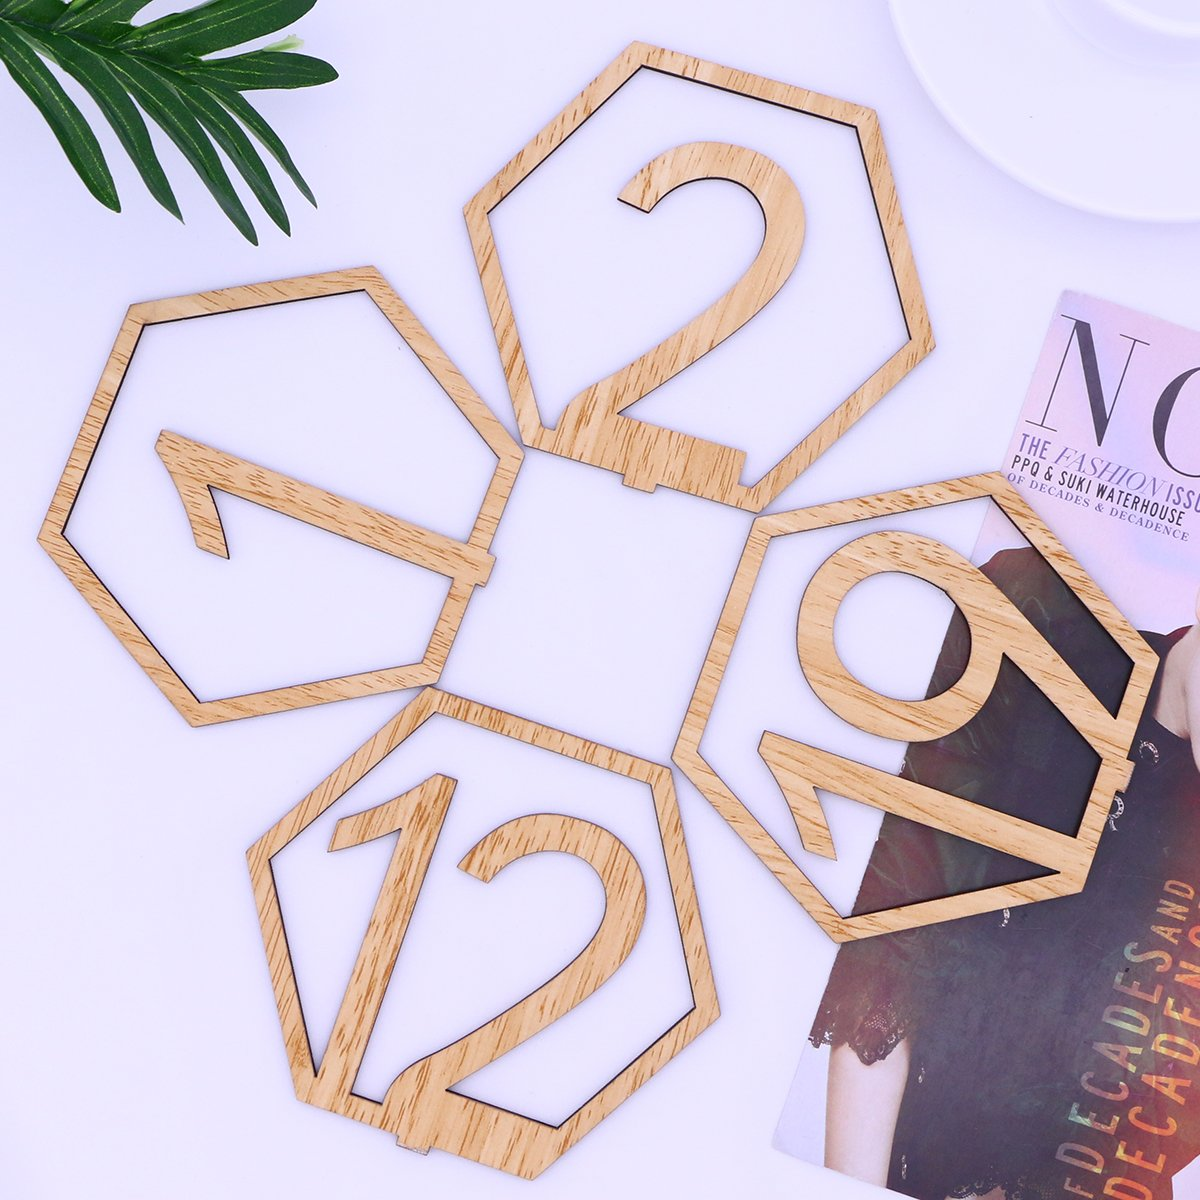 OULII 1-20 Hexagon Wooden Table Numbers with Holder Base for Wedding Birthday Engagement Decoration 20pcs by OULII (Image #3)